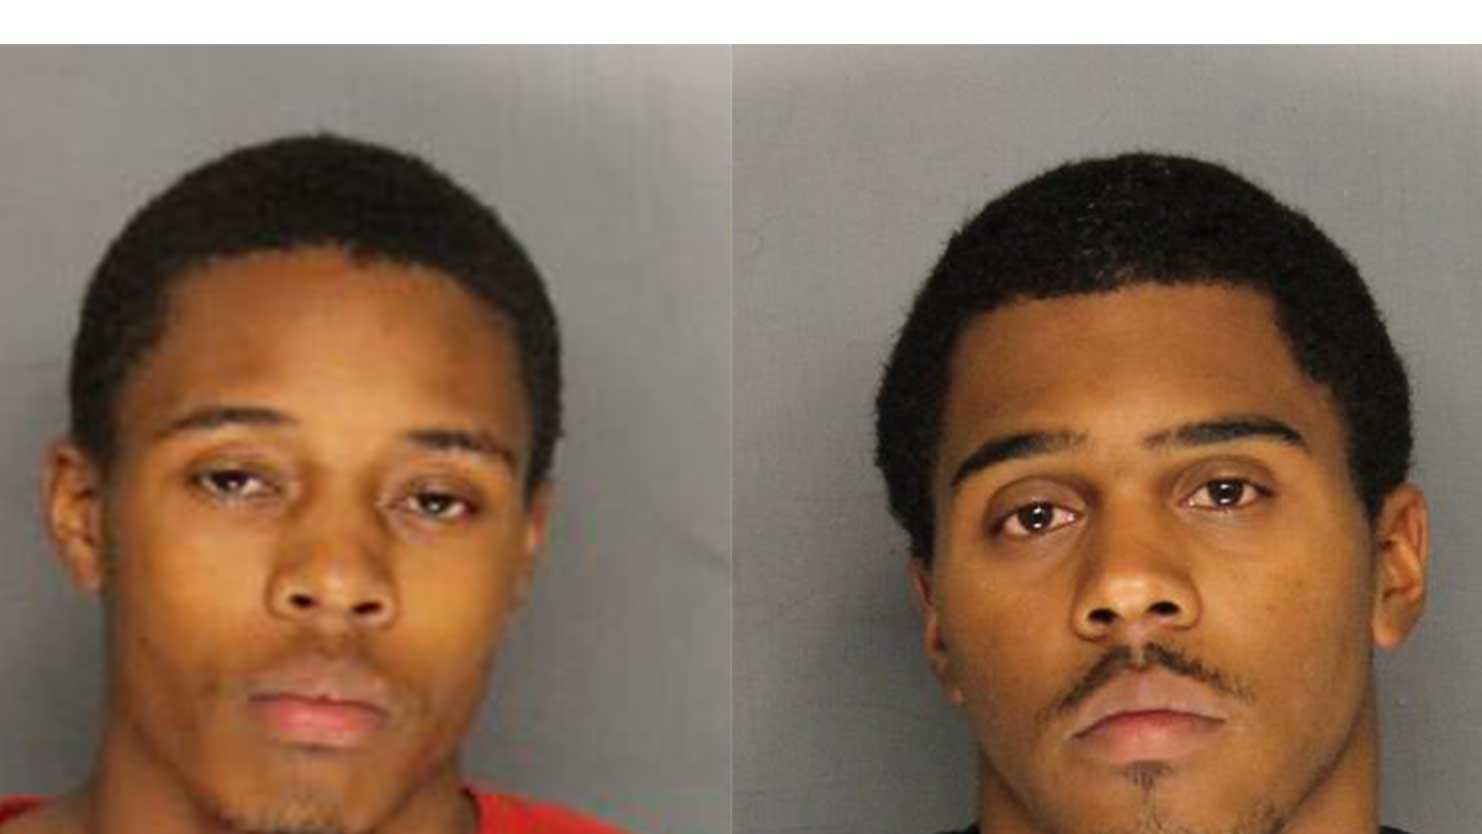 From left to right: Christon Jones and Sedrick Hutchinson (Sept. 10, 2014)